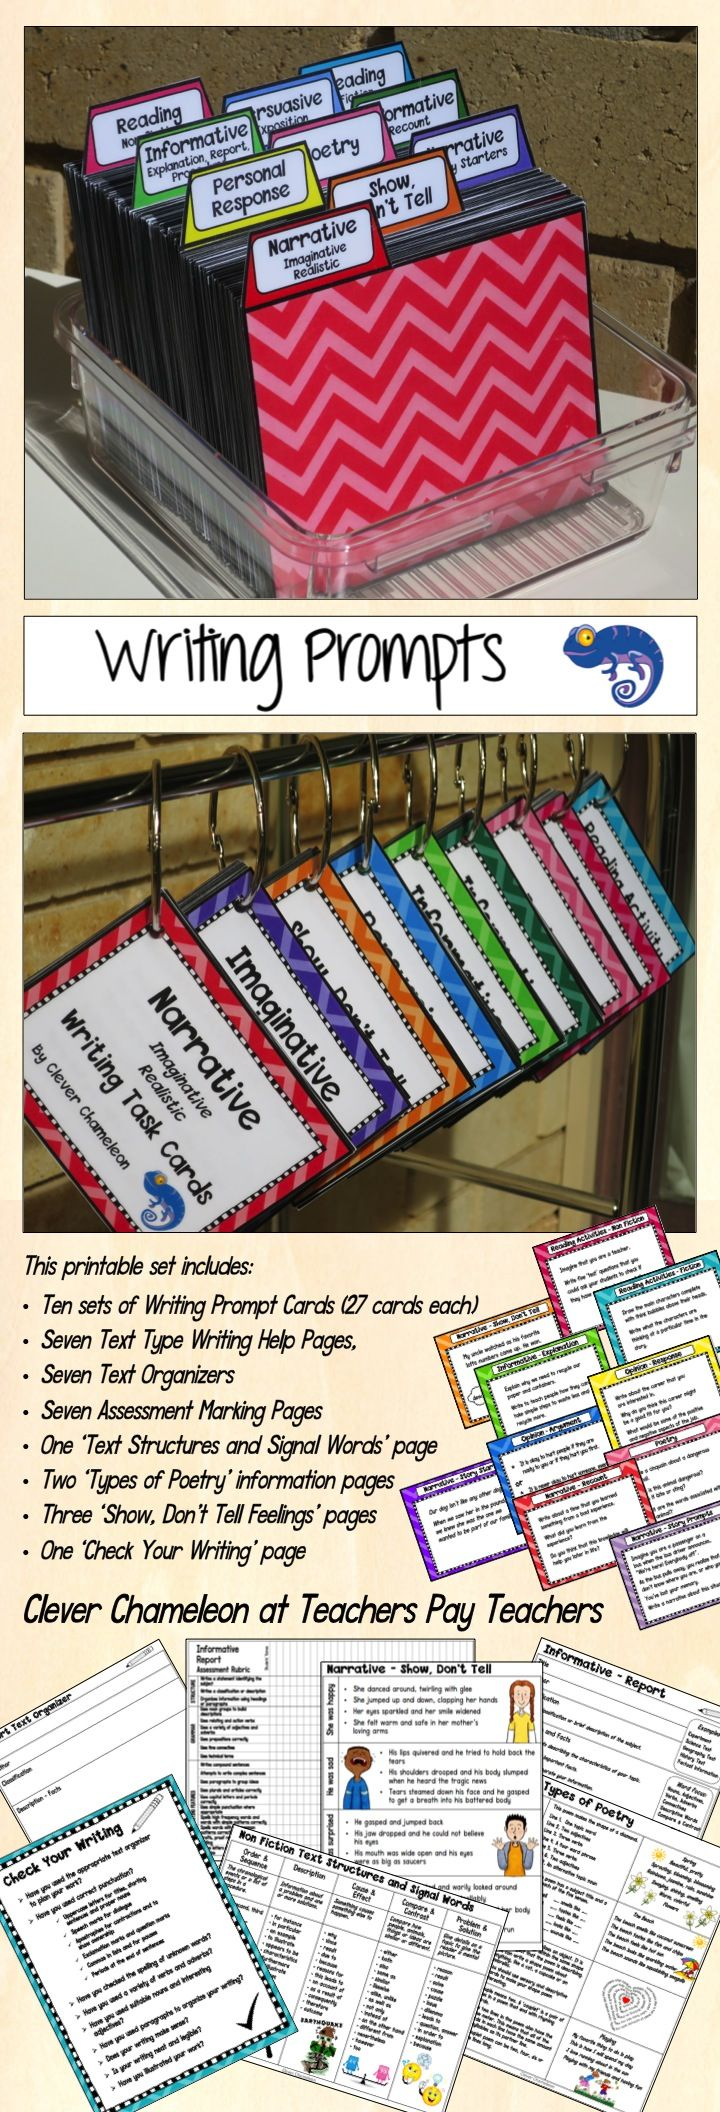 Writing Prompts - Task Cards Bundle includes 270 writing prompt cards under ten separate headings and a variety of writing help pages.